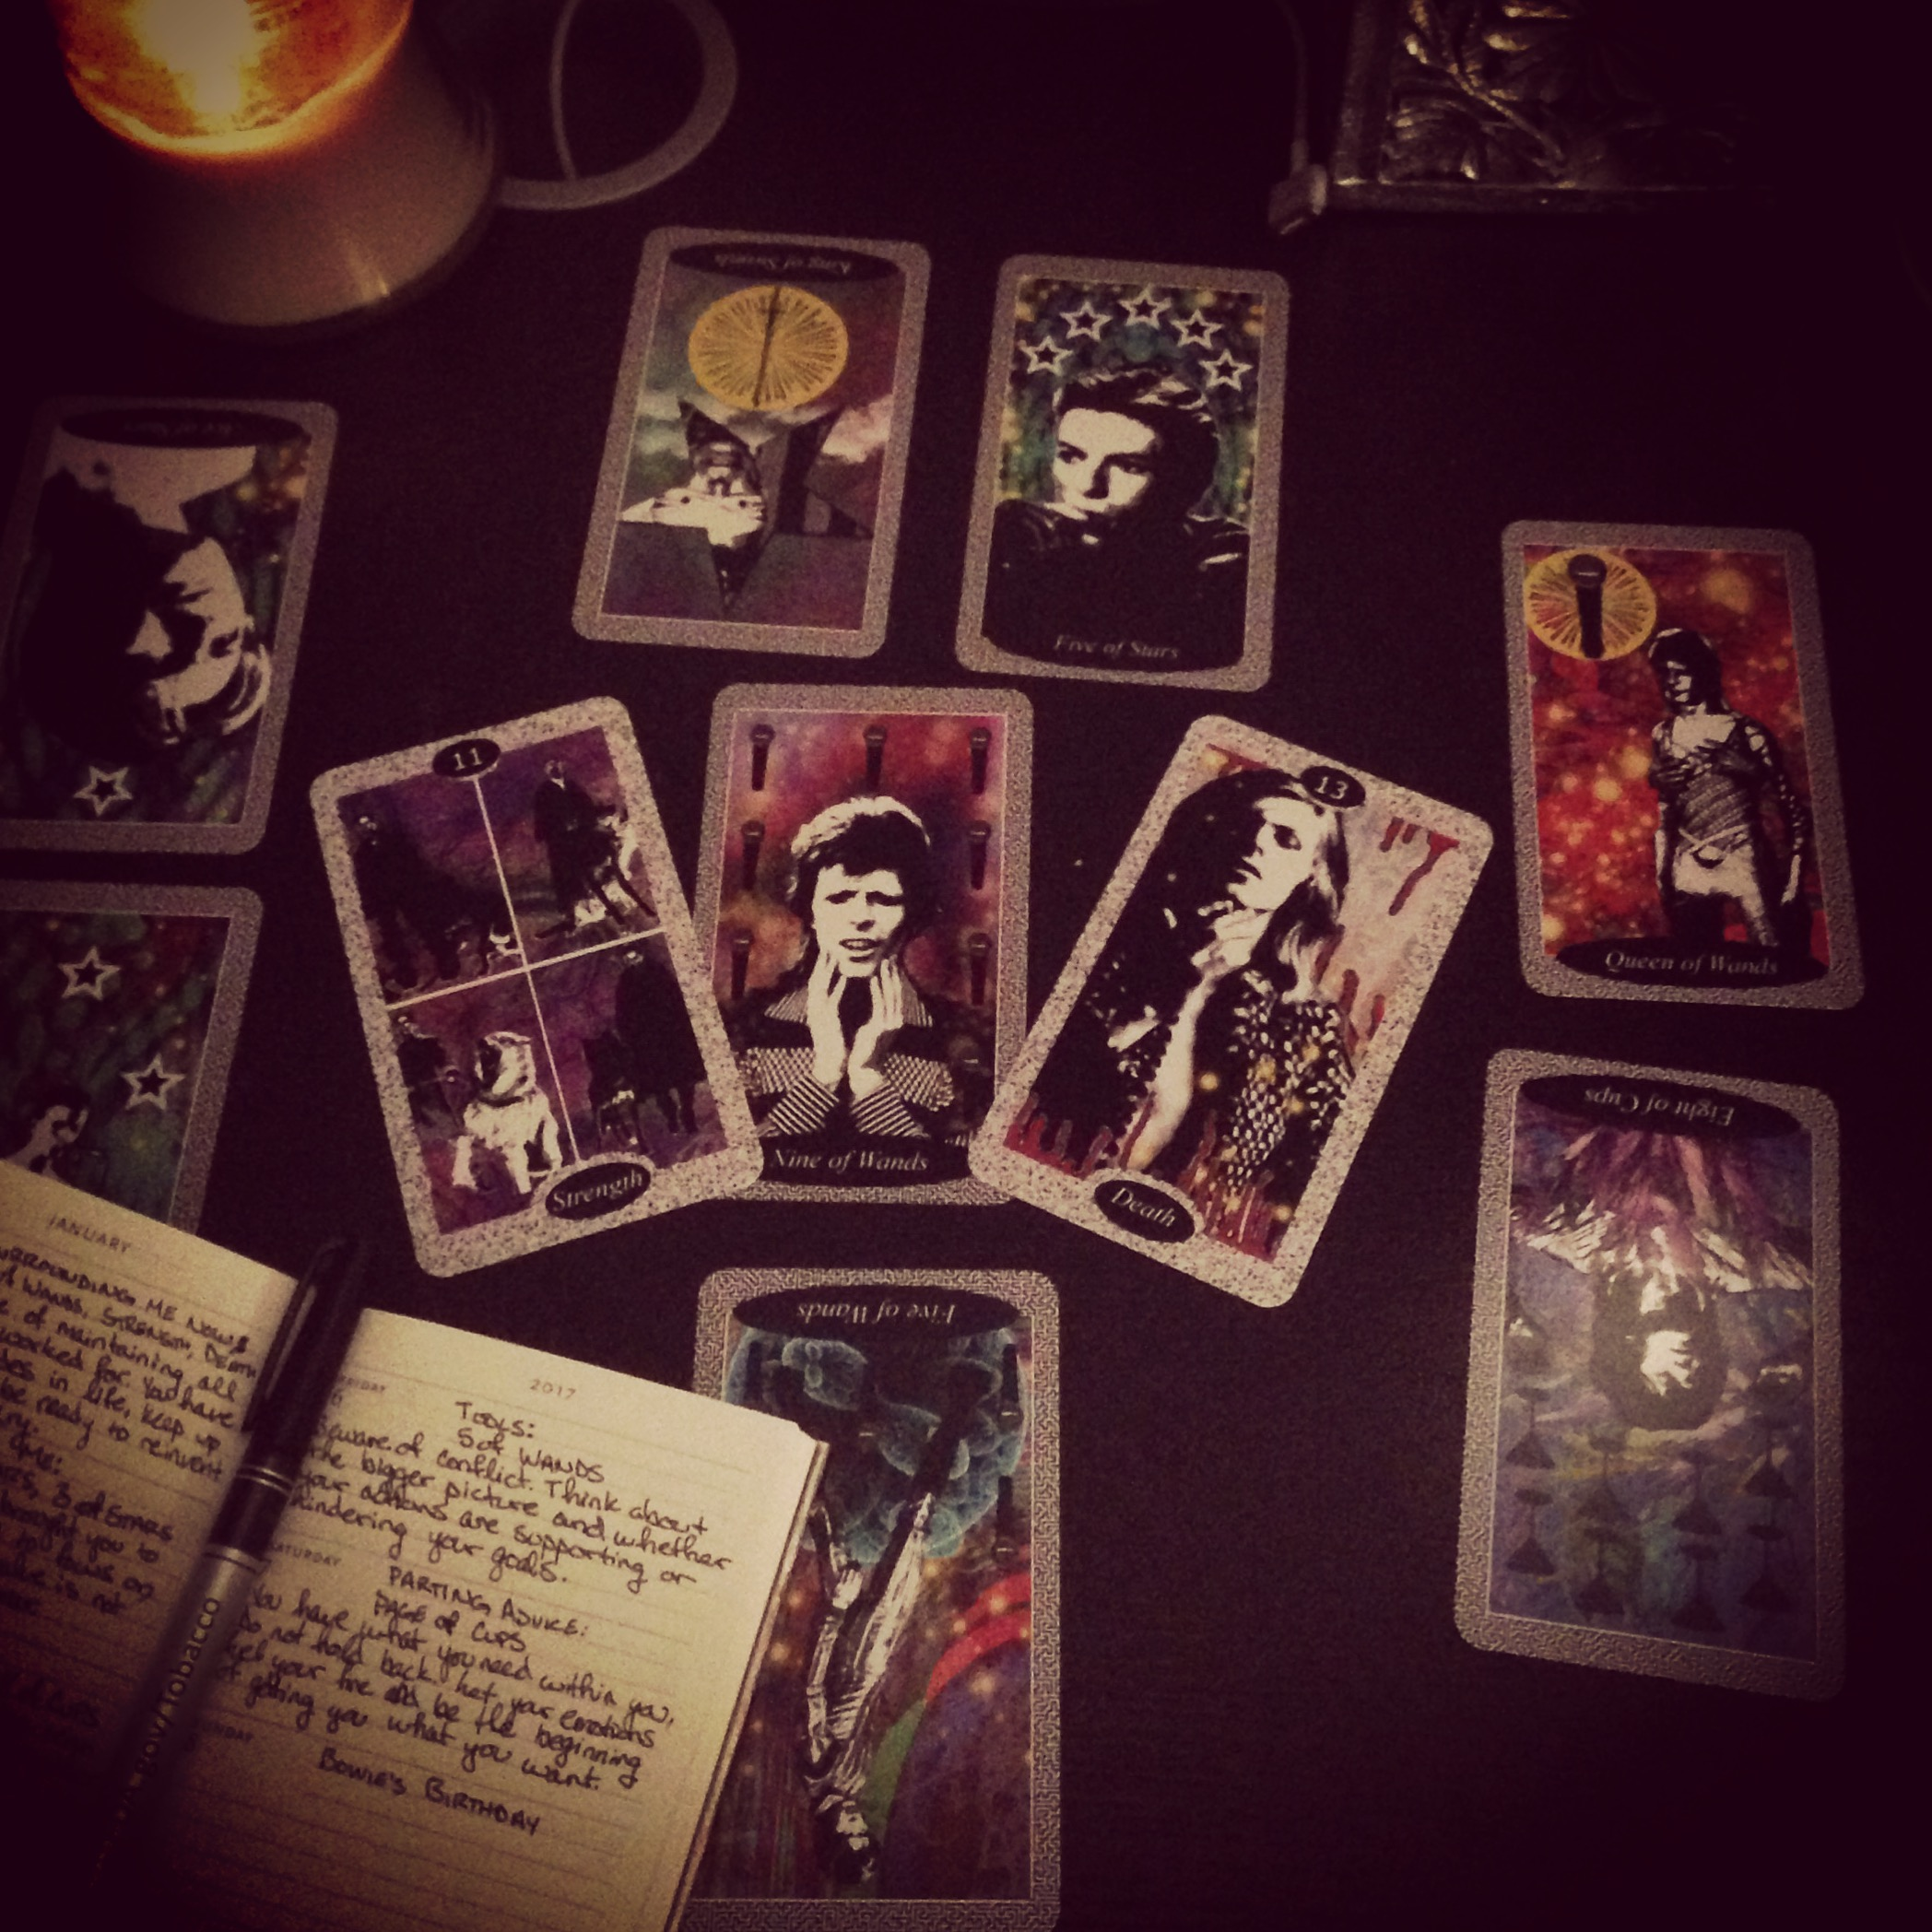 My new year's tarot spread today, with my Bowie deck. The death card came up today, as it has every year at the start of the year. Big ch-ch-ch-changes ahead!